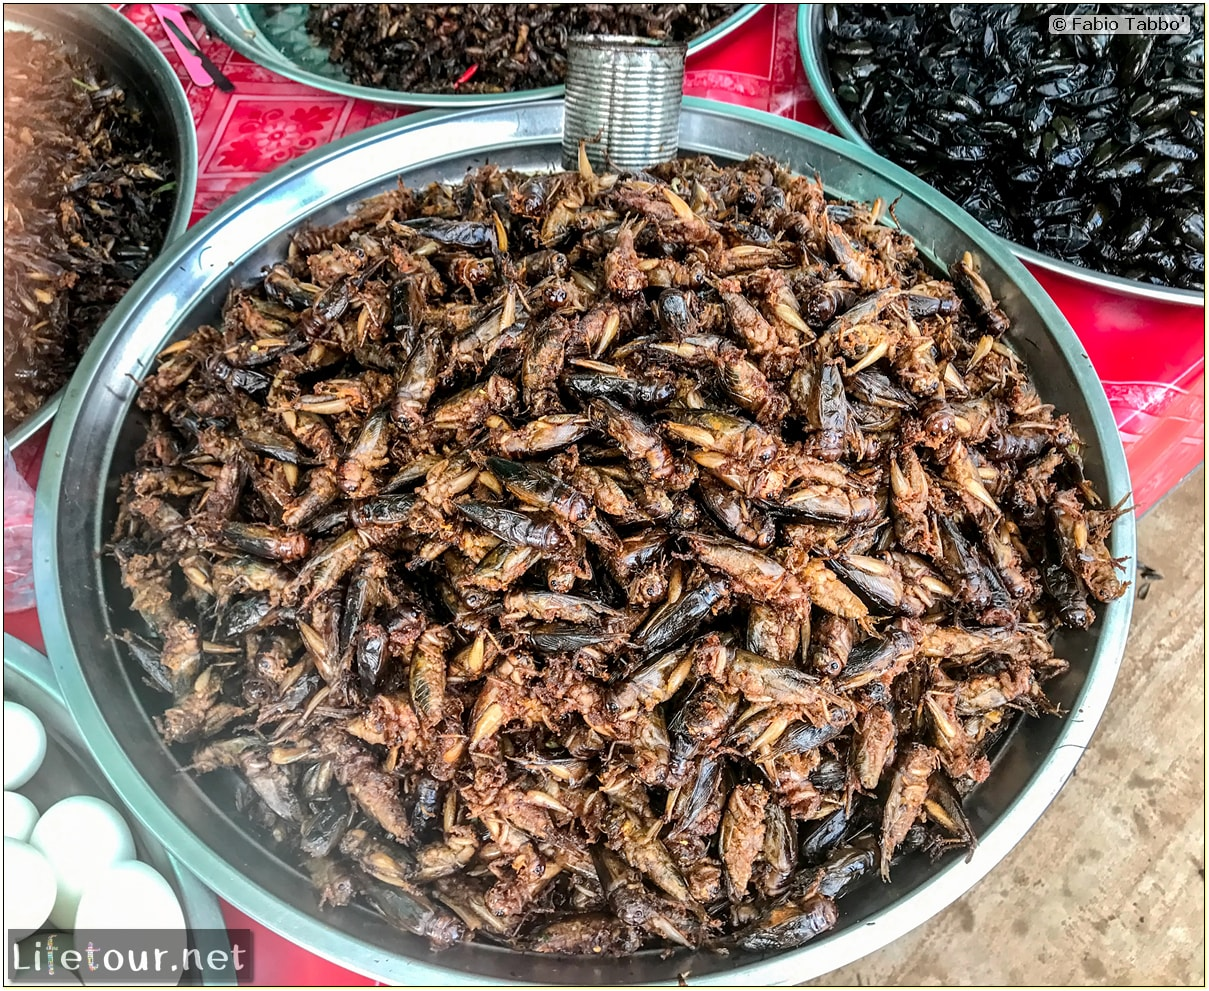 Fabio_s-LifeTour---Cambodia-(2017-July-August)---Skun---Other-edible-insects-(scorpions,-beetles-etc.)---18397